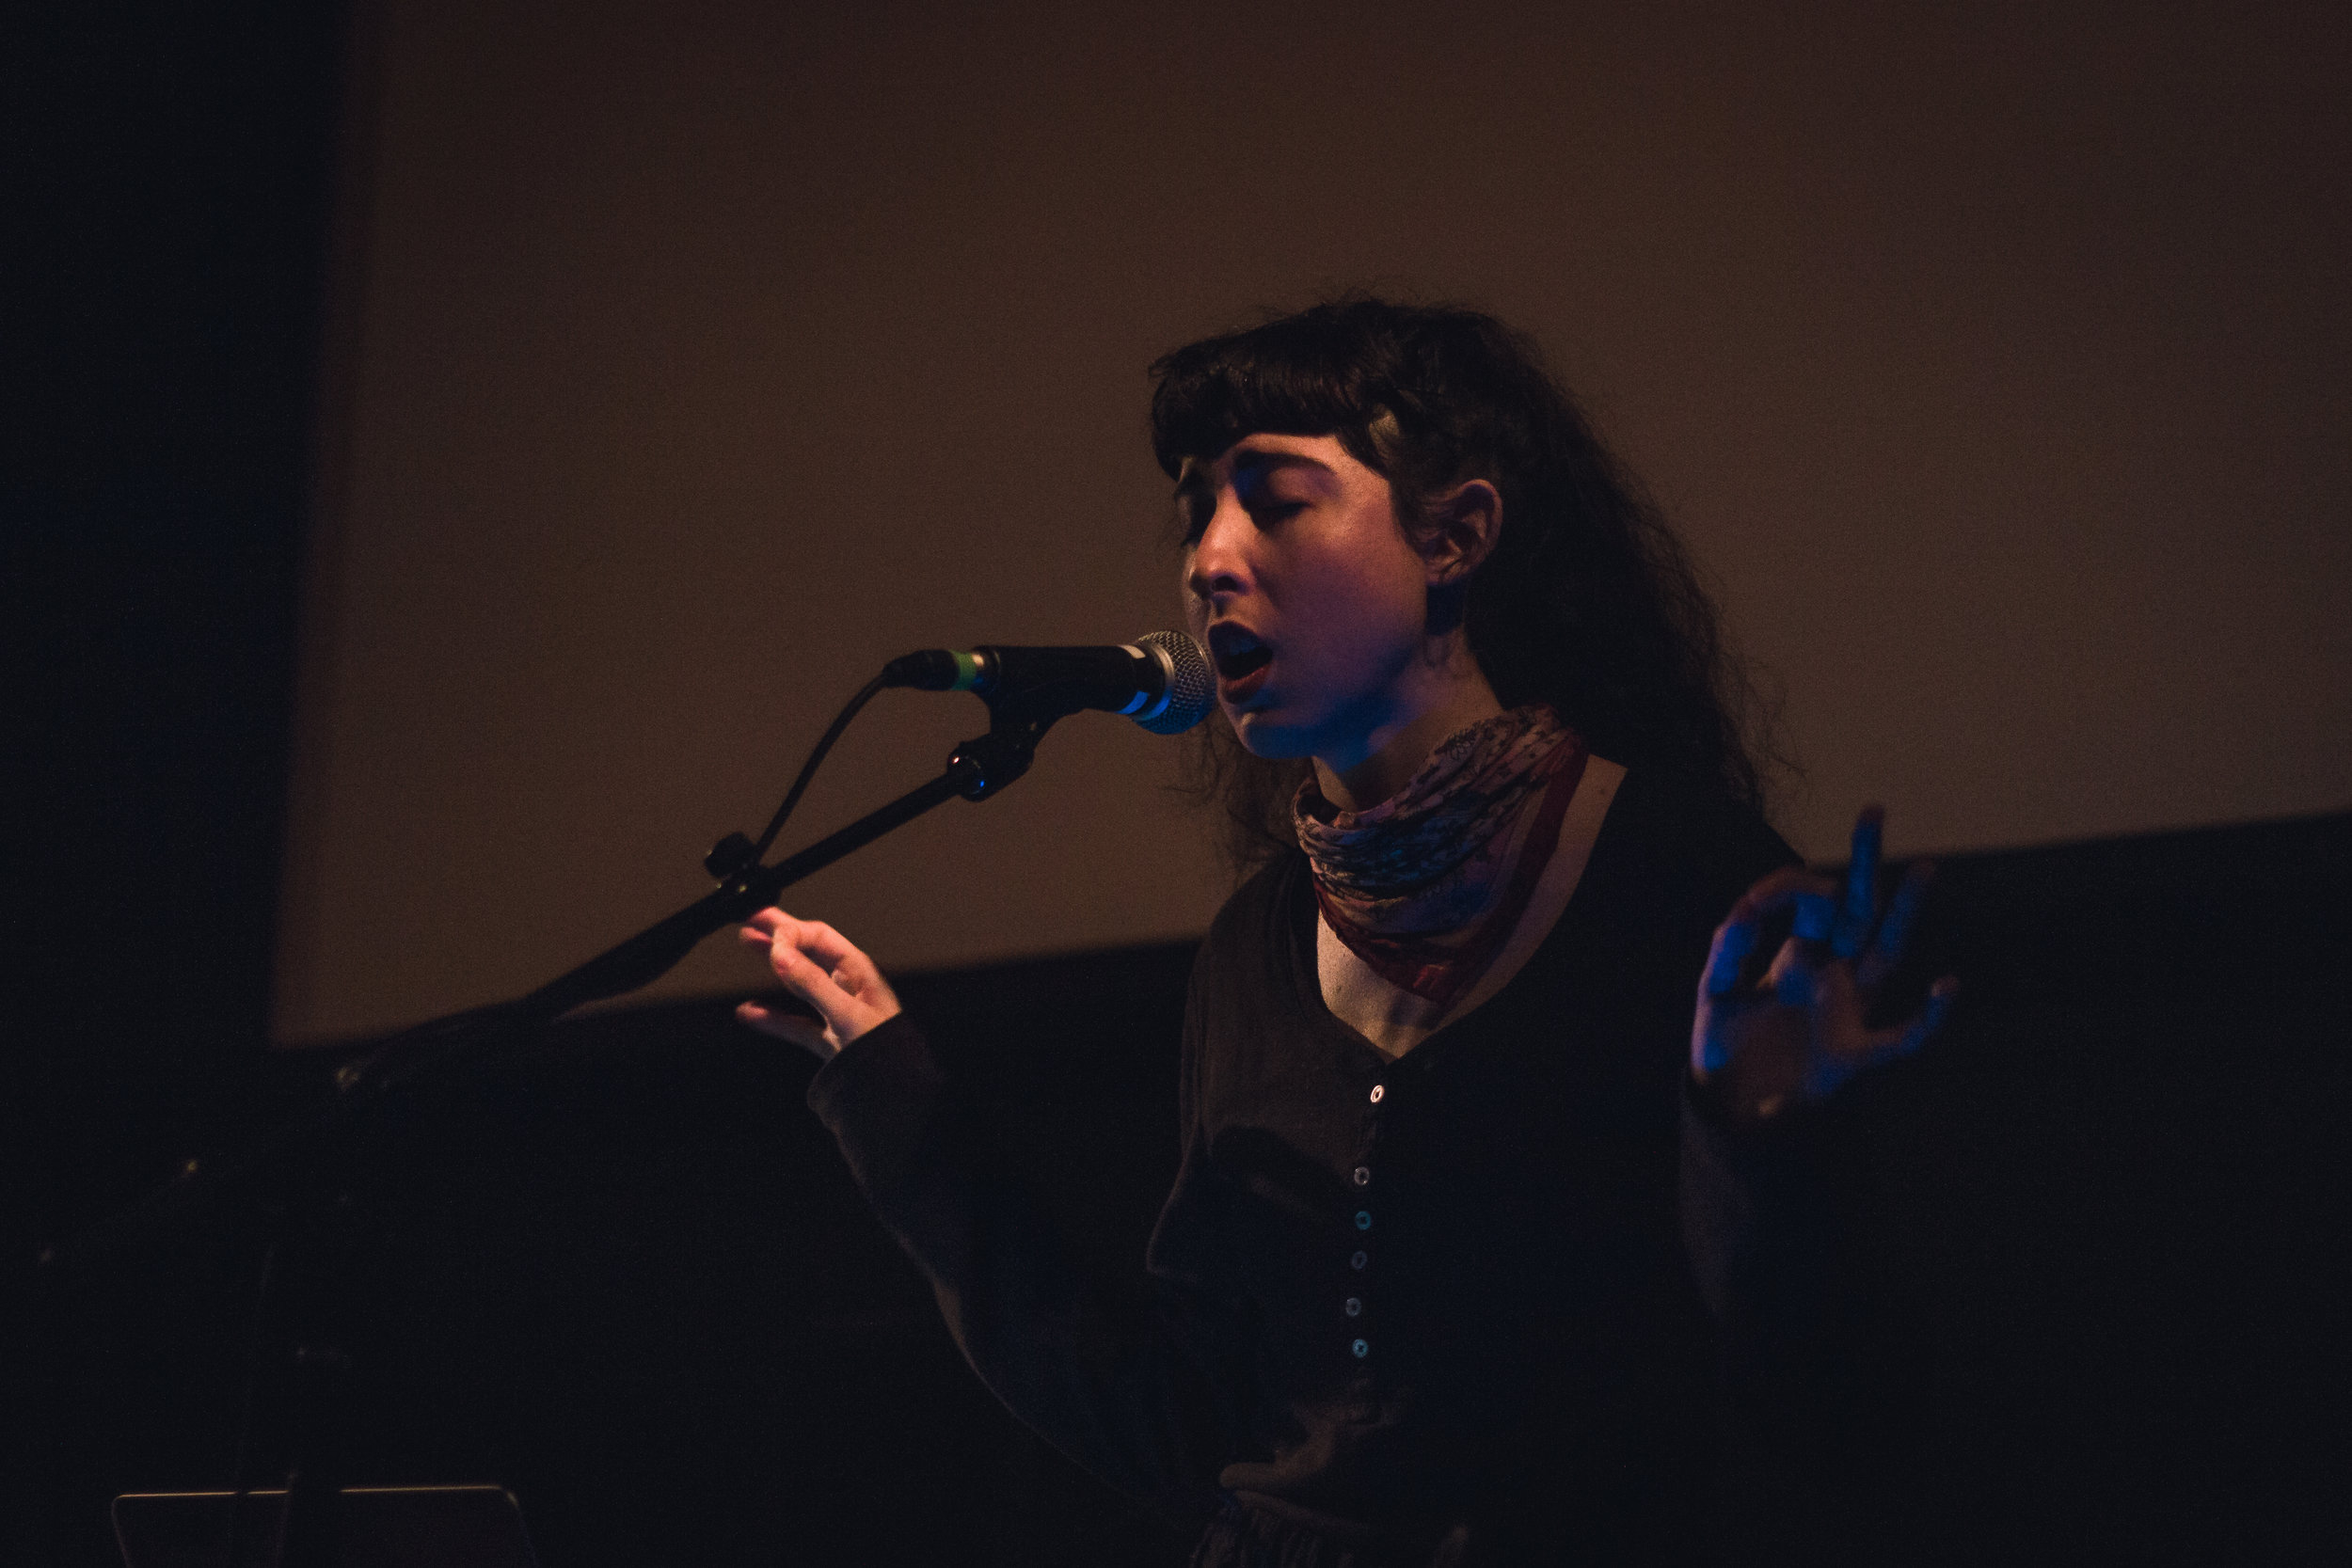 Image of Alamank performing at Dardishi Festival 2019 at CCA Glasgow. Photography by Noor Abdel-Razik